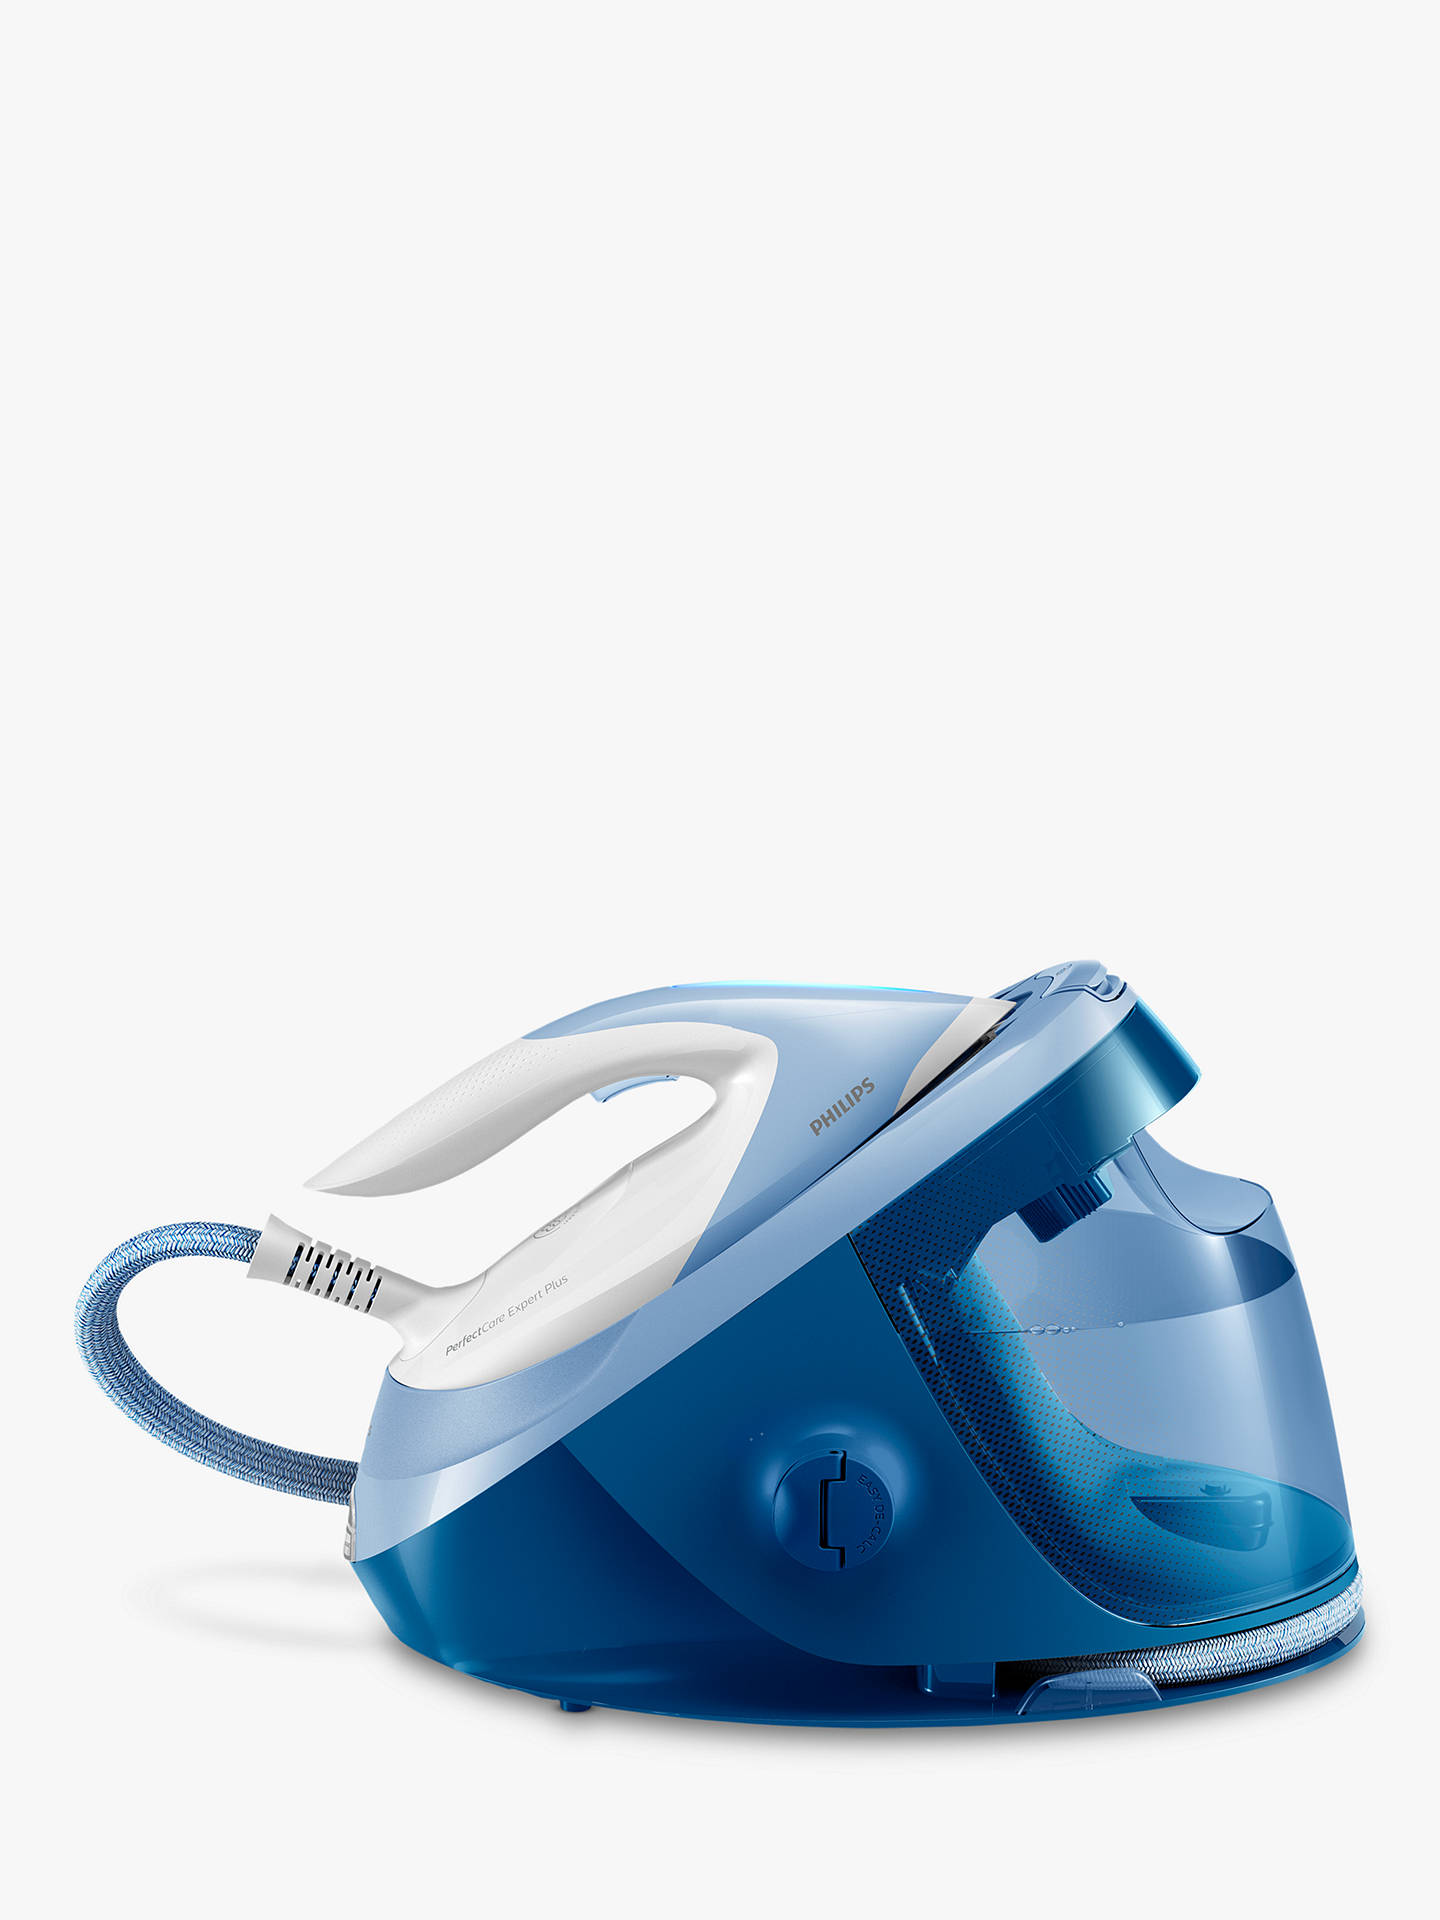 Buy Philips GC8942/26 PerfectCare Expert Plus Steam Generator Iron, Blue Online at johnlewis.com